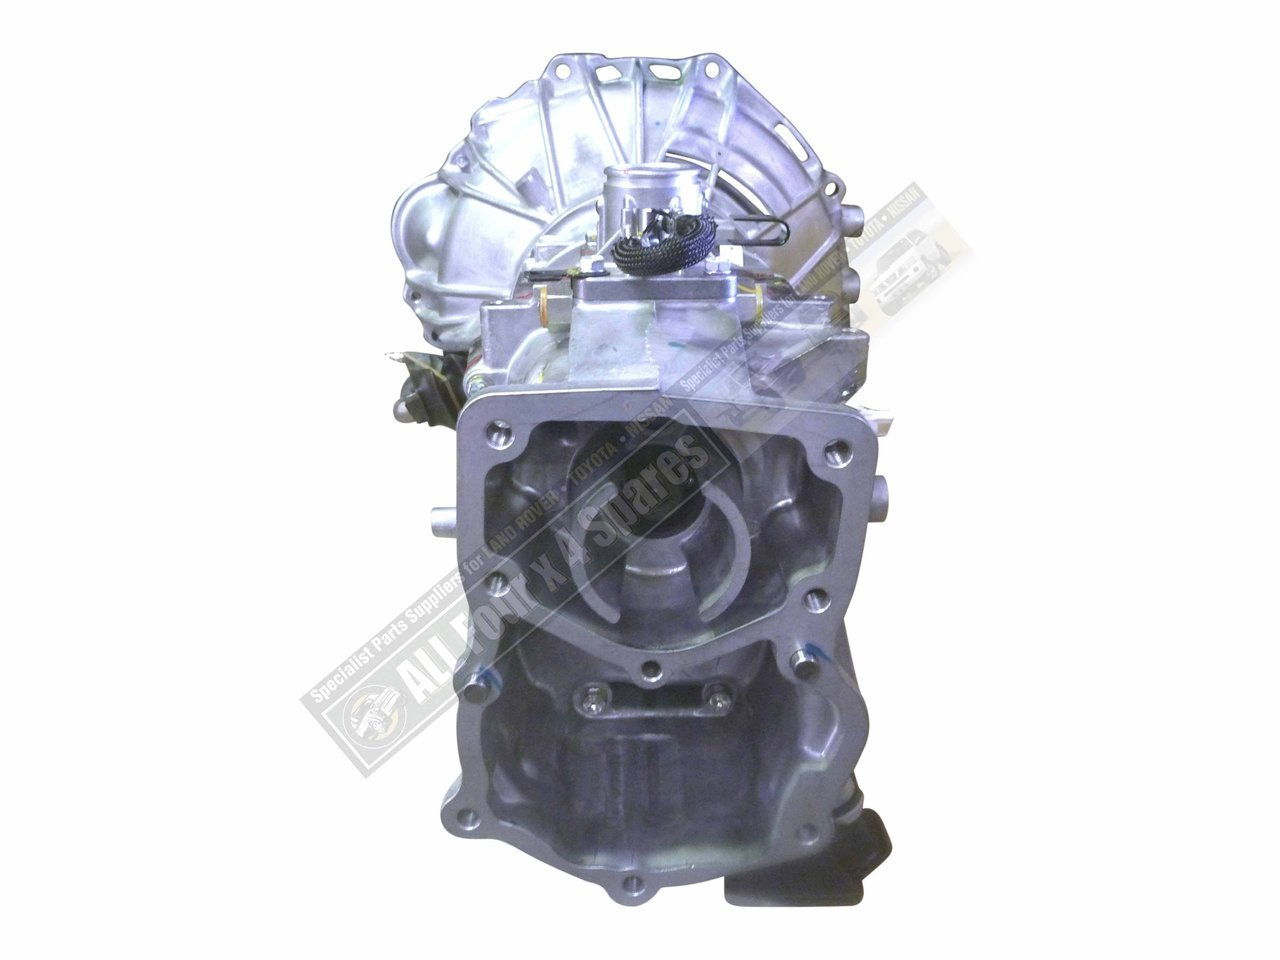 gear box The widest and cheap gearbox resource in china find planetary gear reducer, bevel gearbox, worm gearbox, right angle gearbox, plastic gearbox here.